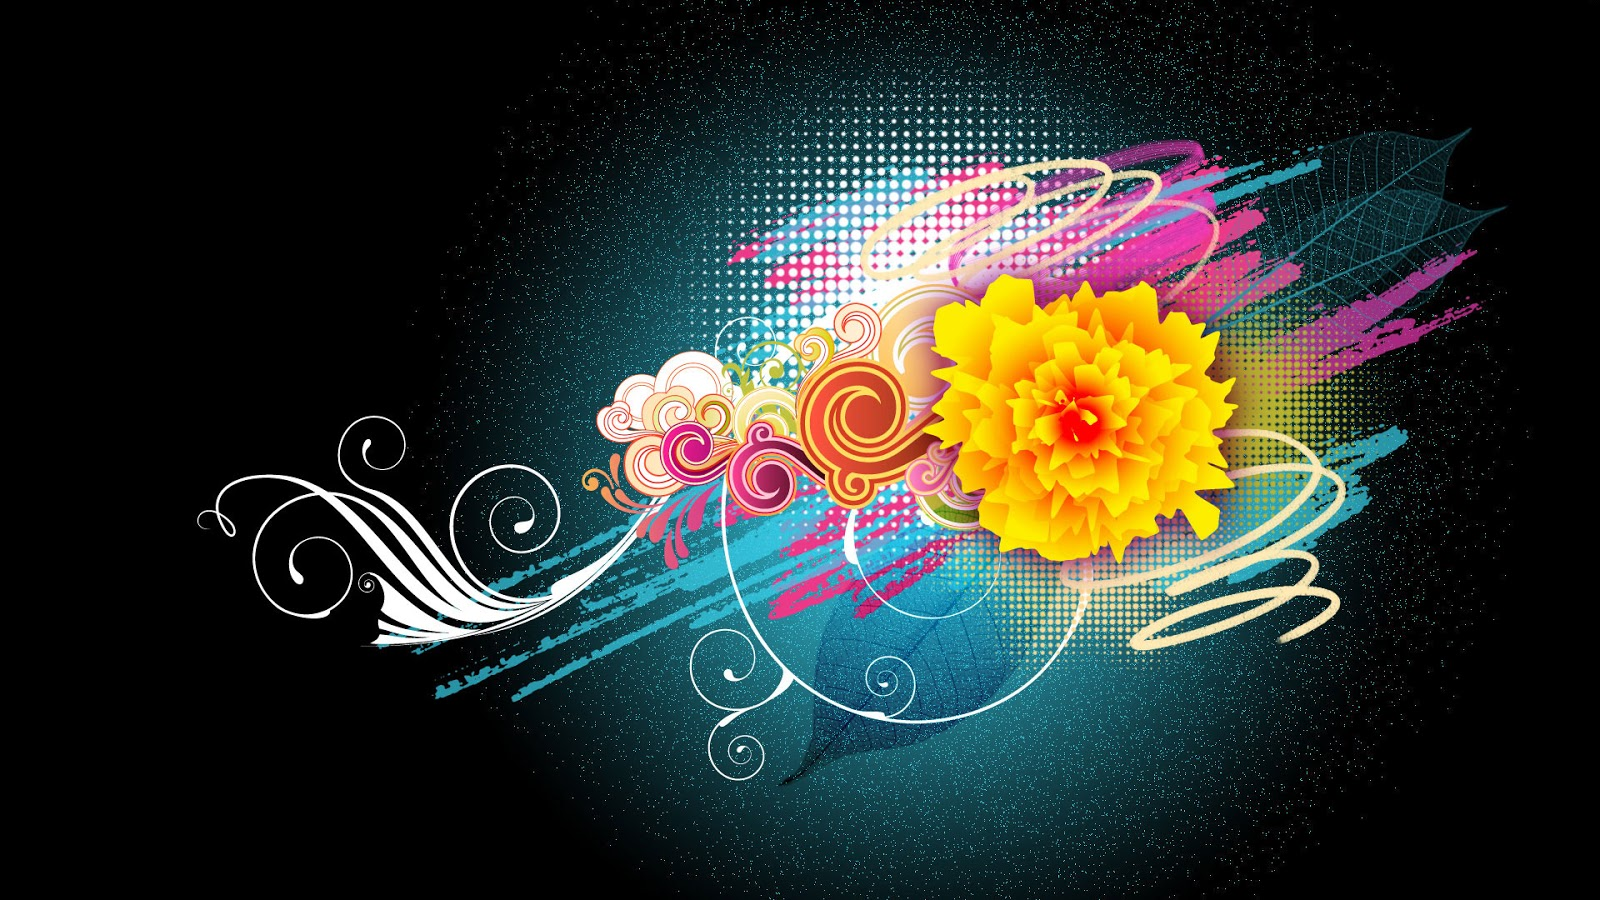 Hd Wallpaper Graphic: beautiful 2013 backgrounds design hd wallpapers free download 1080p